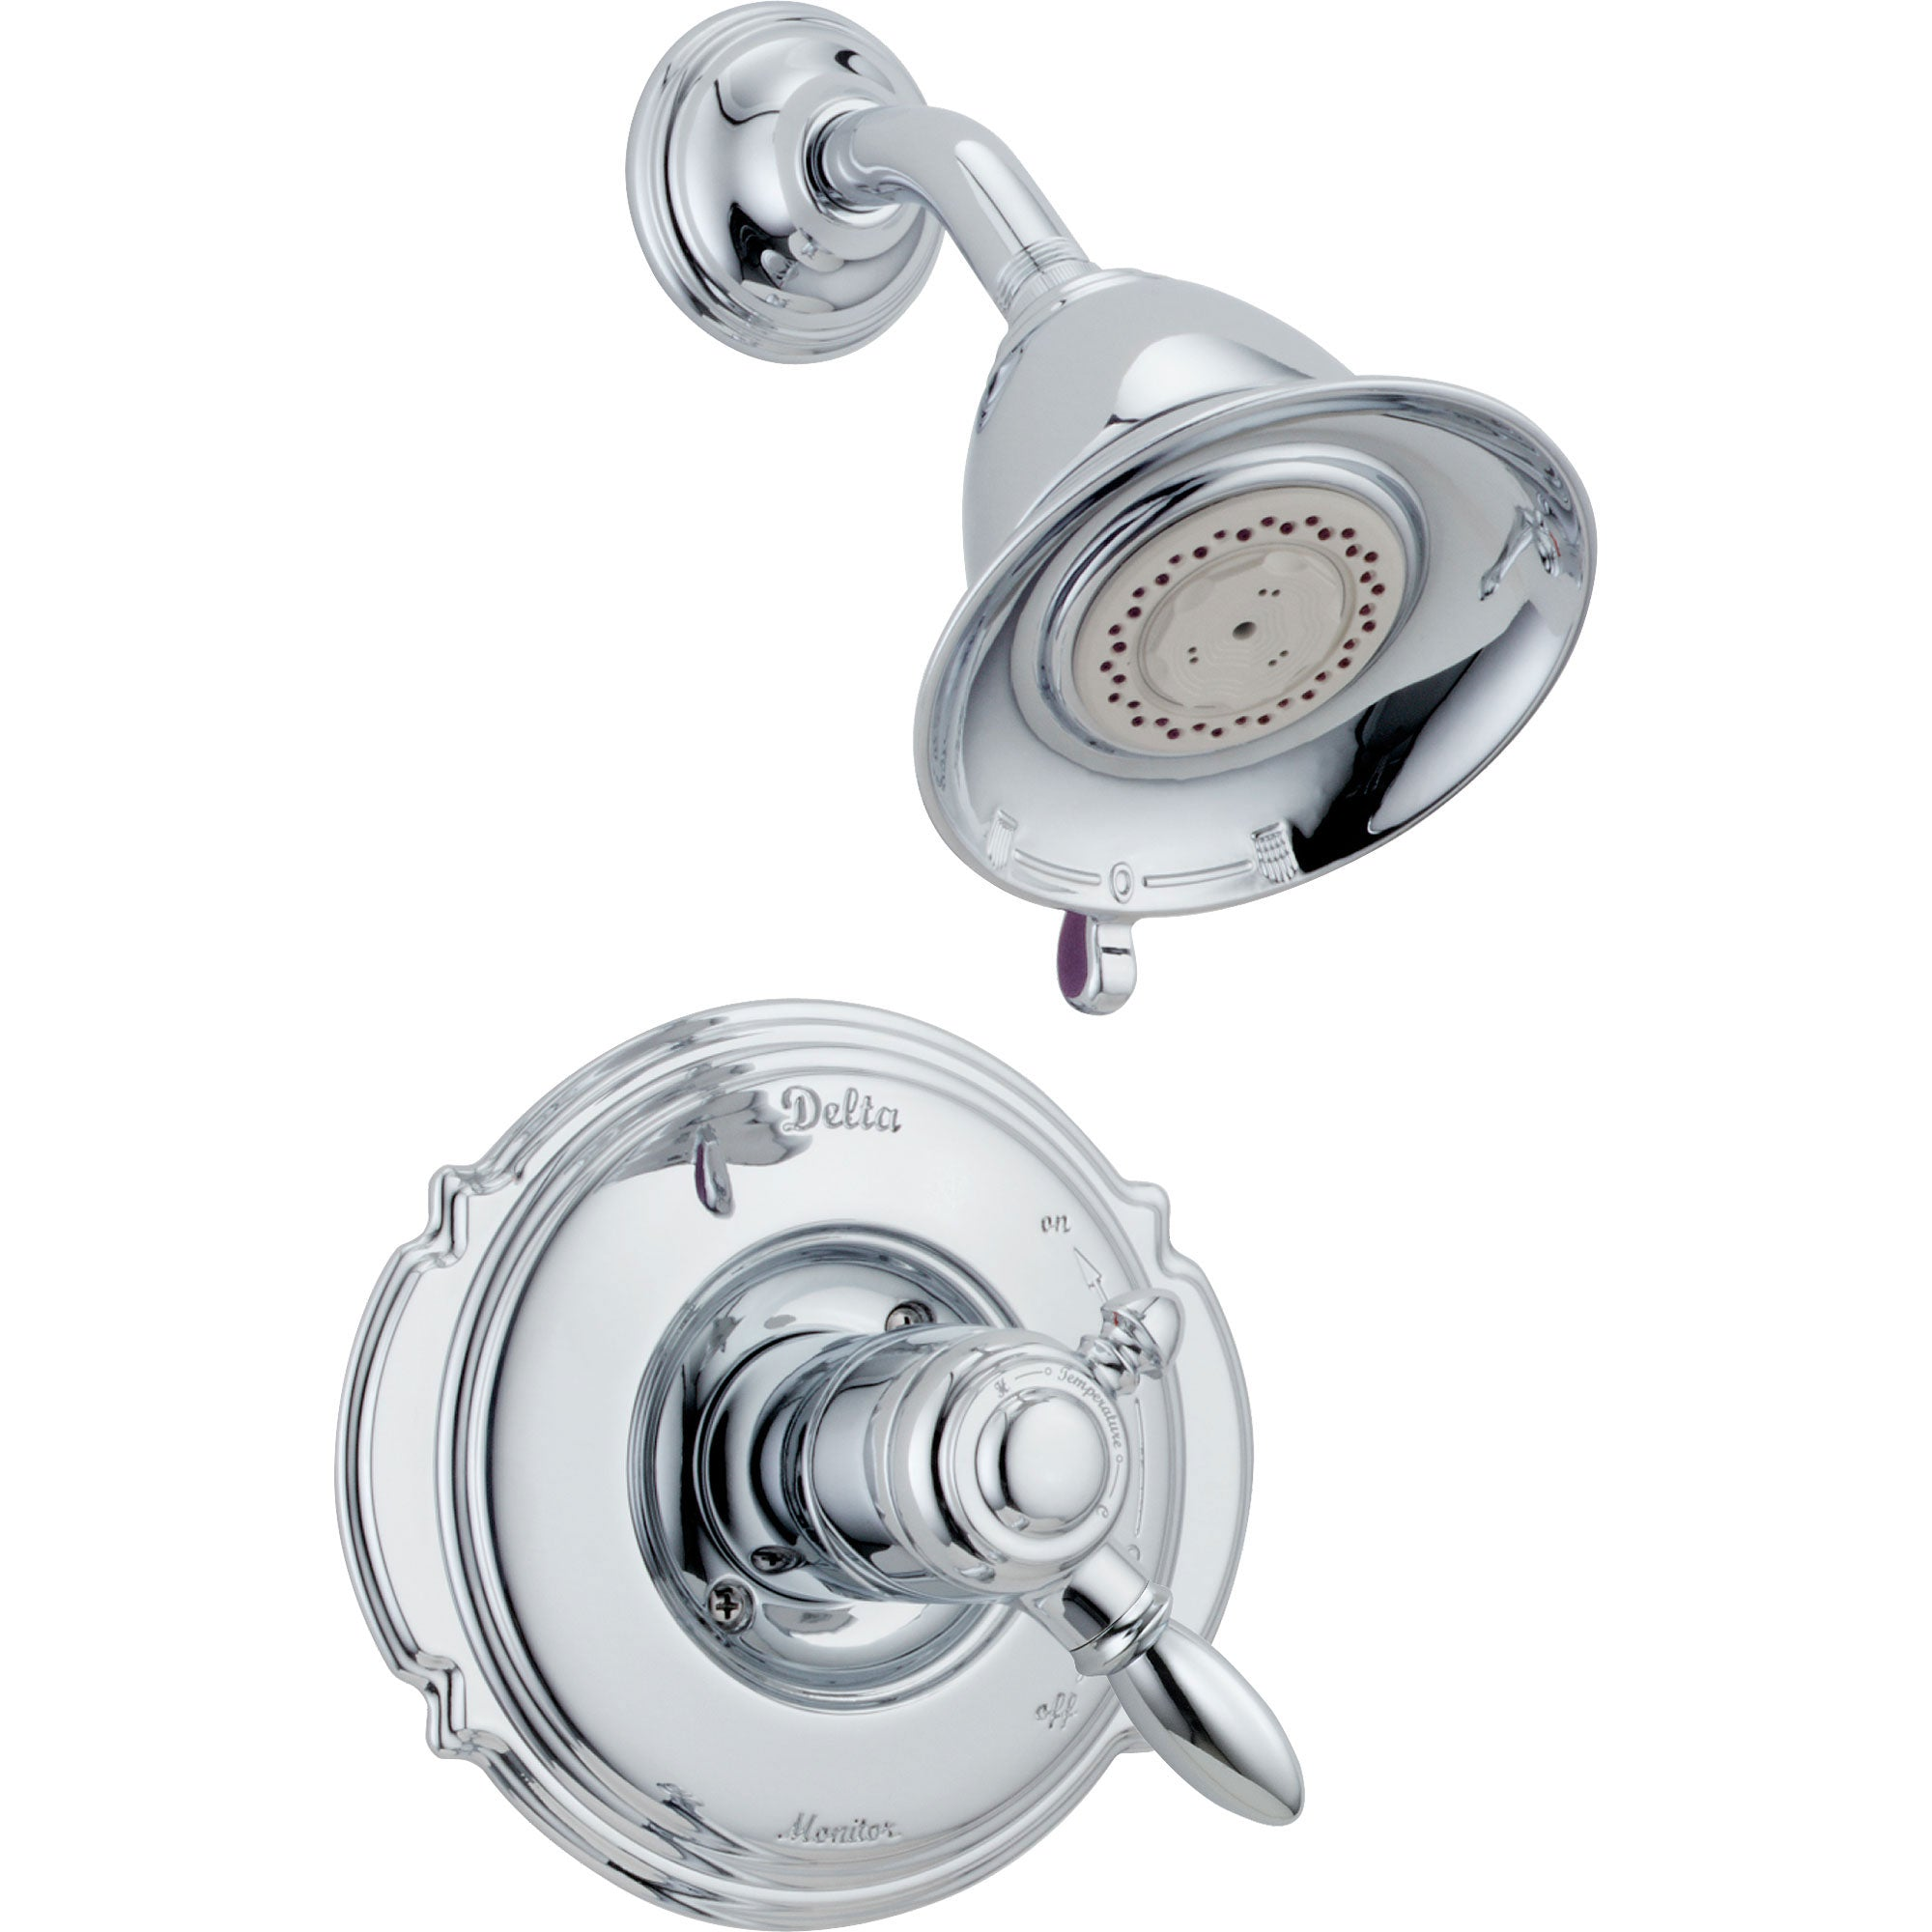 Delta Victorian Dual Control Temp/Volume Chrome Shower Faucet Trim Kit 778933